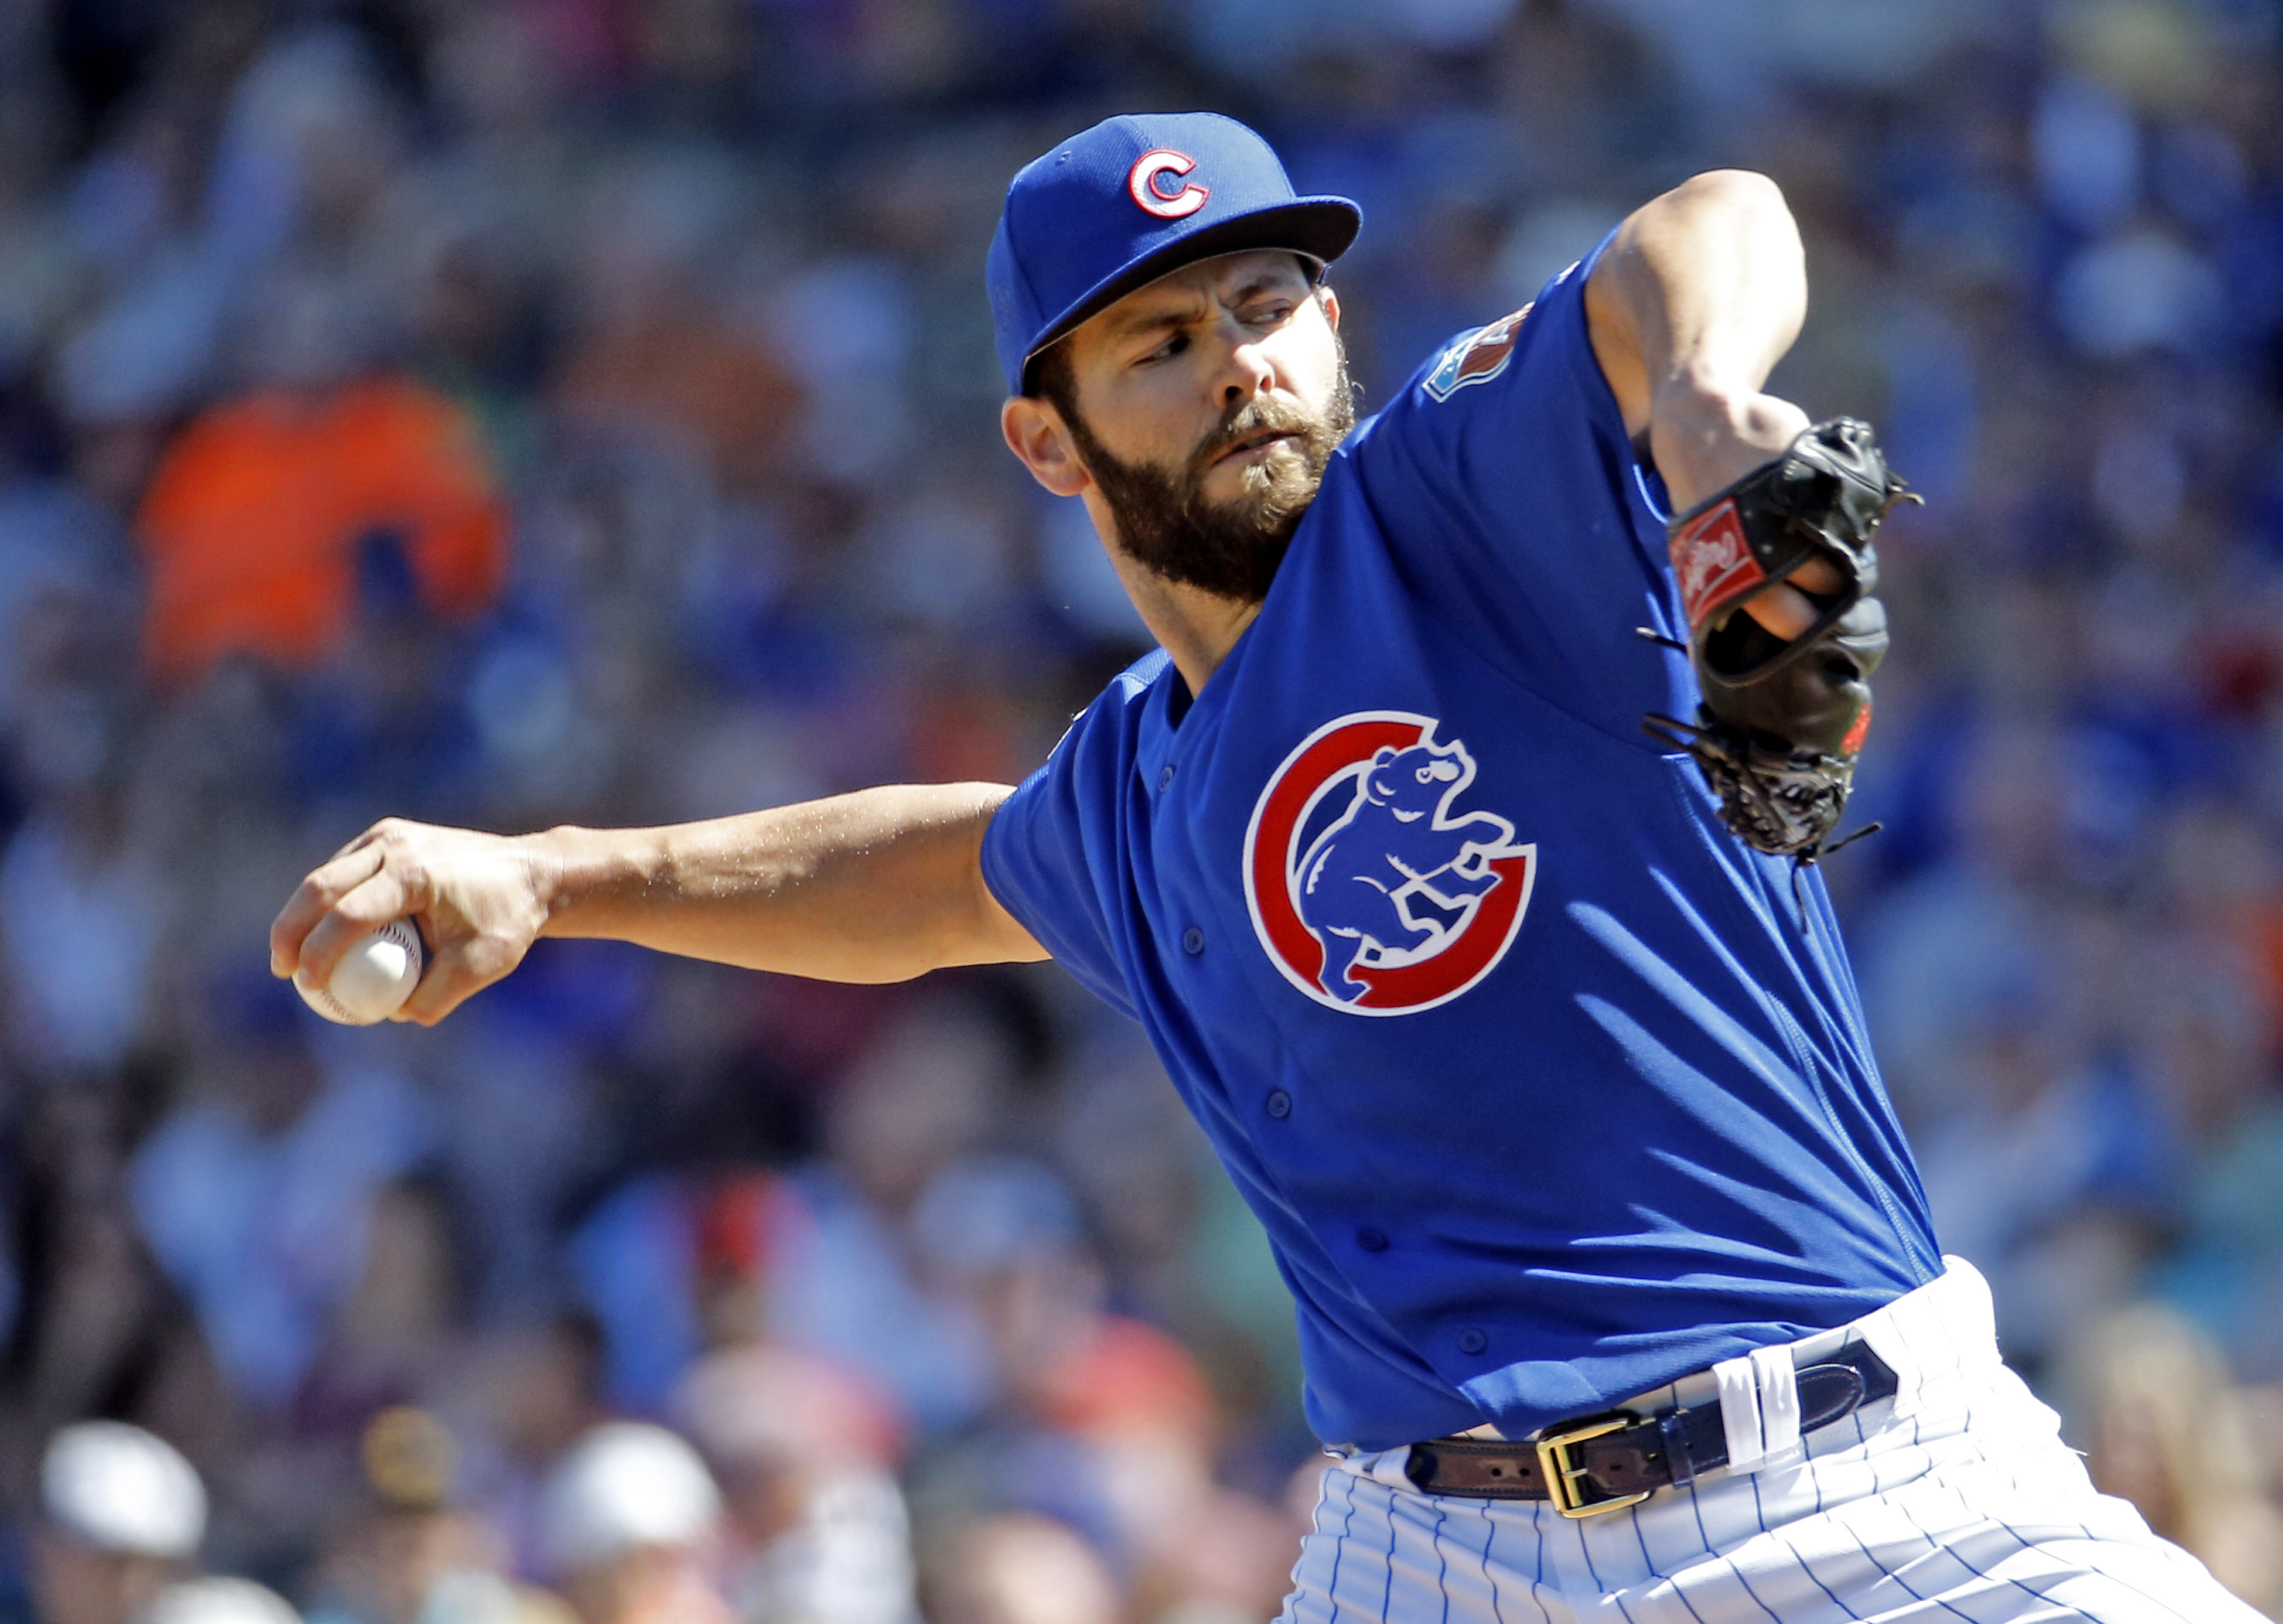 FILE - In this March 9, 2016, file photo, Chicago Cubs' Jake Arrieta throws during the first inning of a spring training baseball game against the Cleveland Indians, in Mesa, Ariz. The Cubs, a season after getting swept by the Mets in the NL Championship